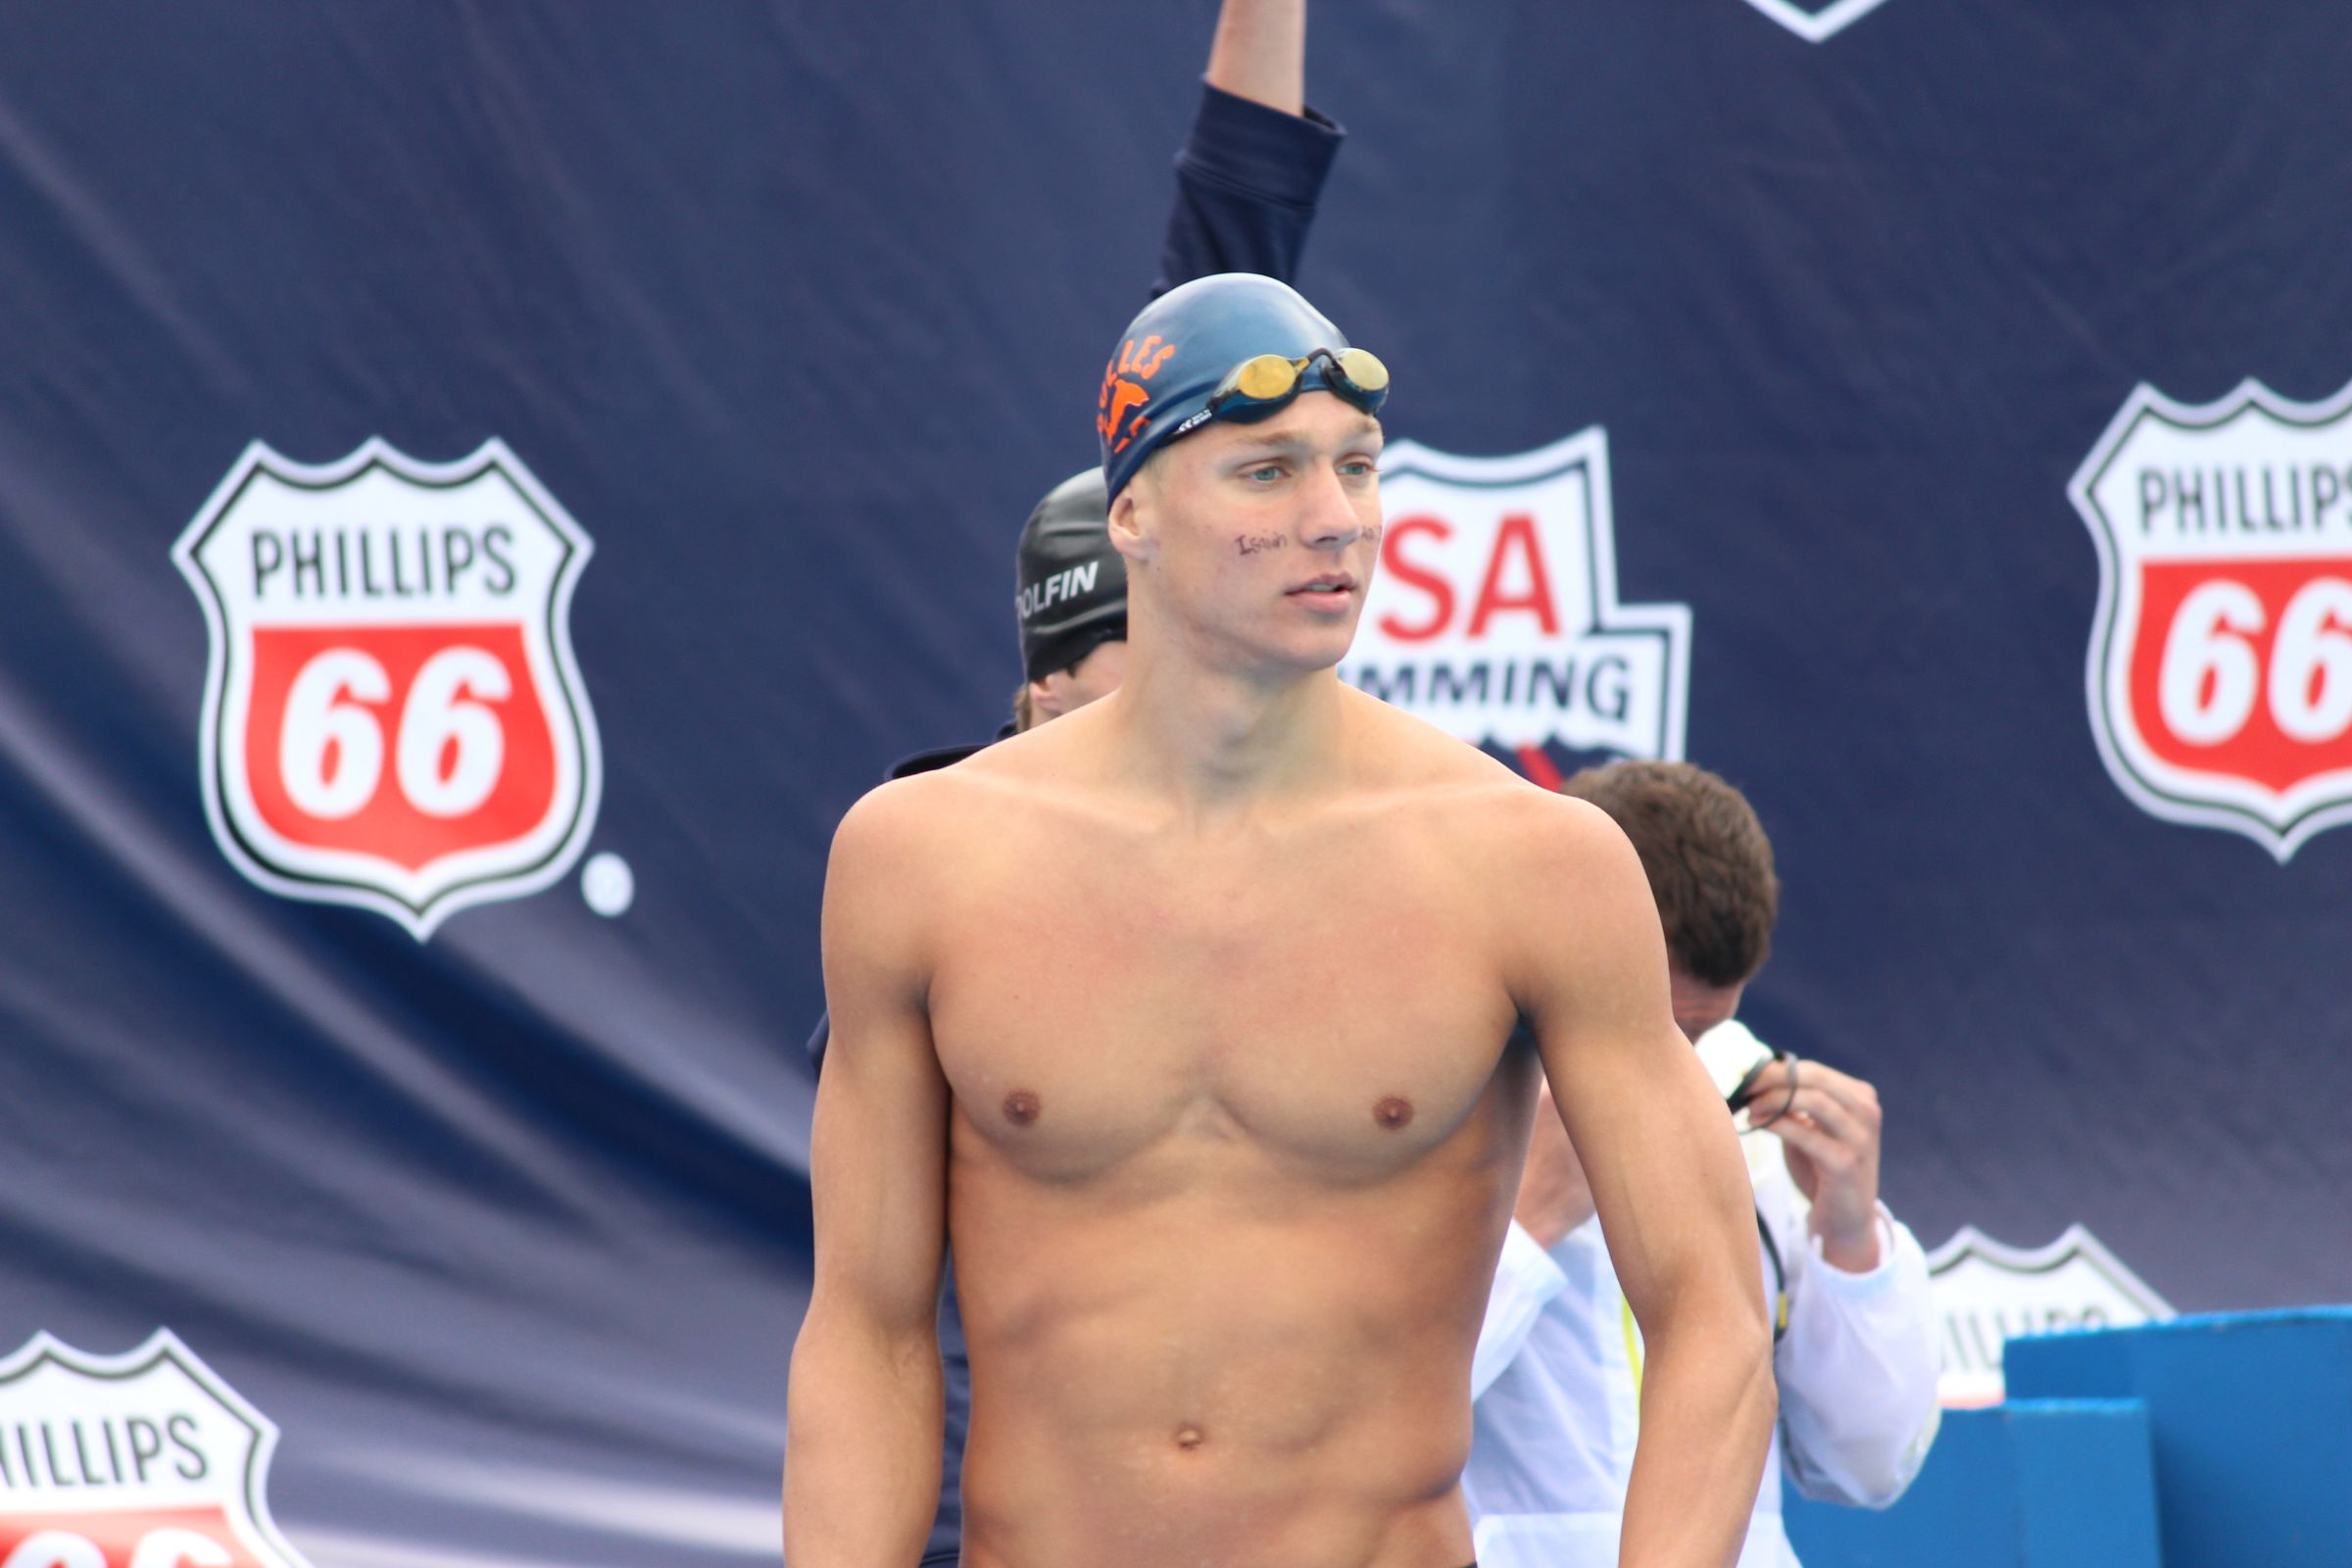 Caeleb Dressel earned a  million dollar salary - leaving the net worth at 0.1 million in 2017